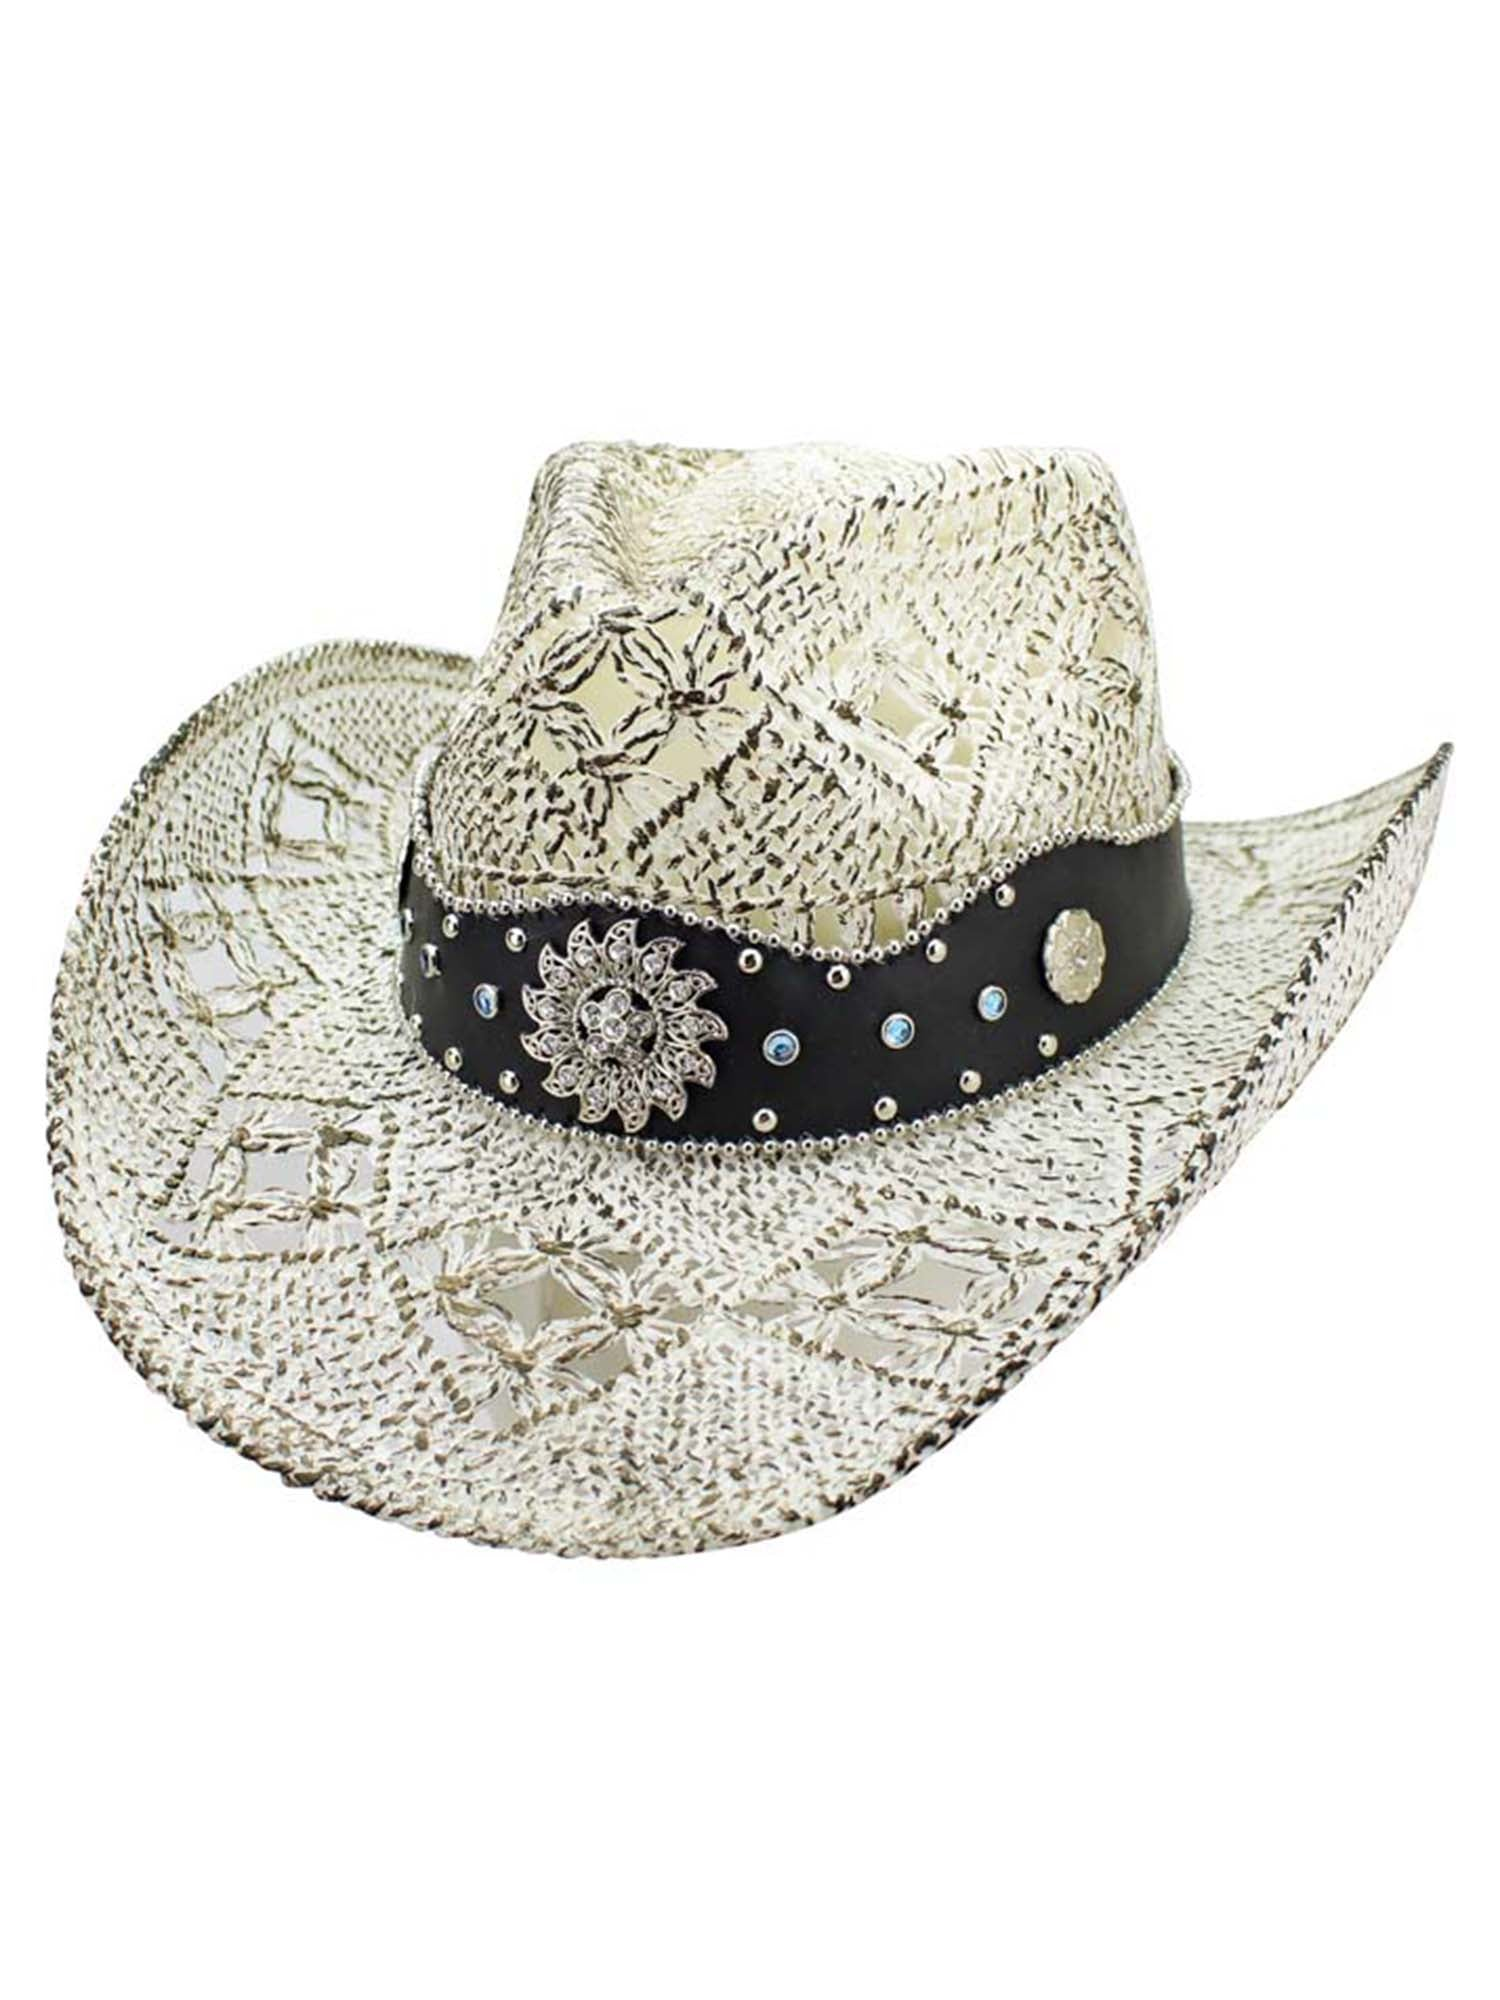 White Antiqued Straw Cowboy Hat With Jeweled Band